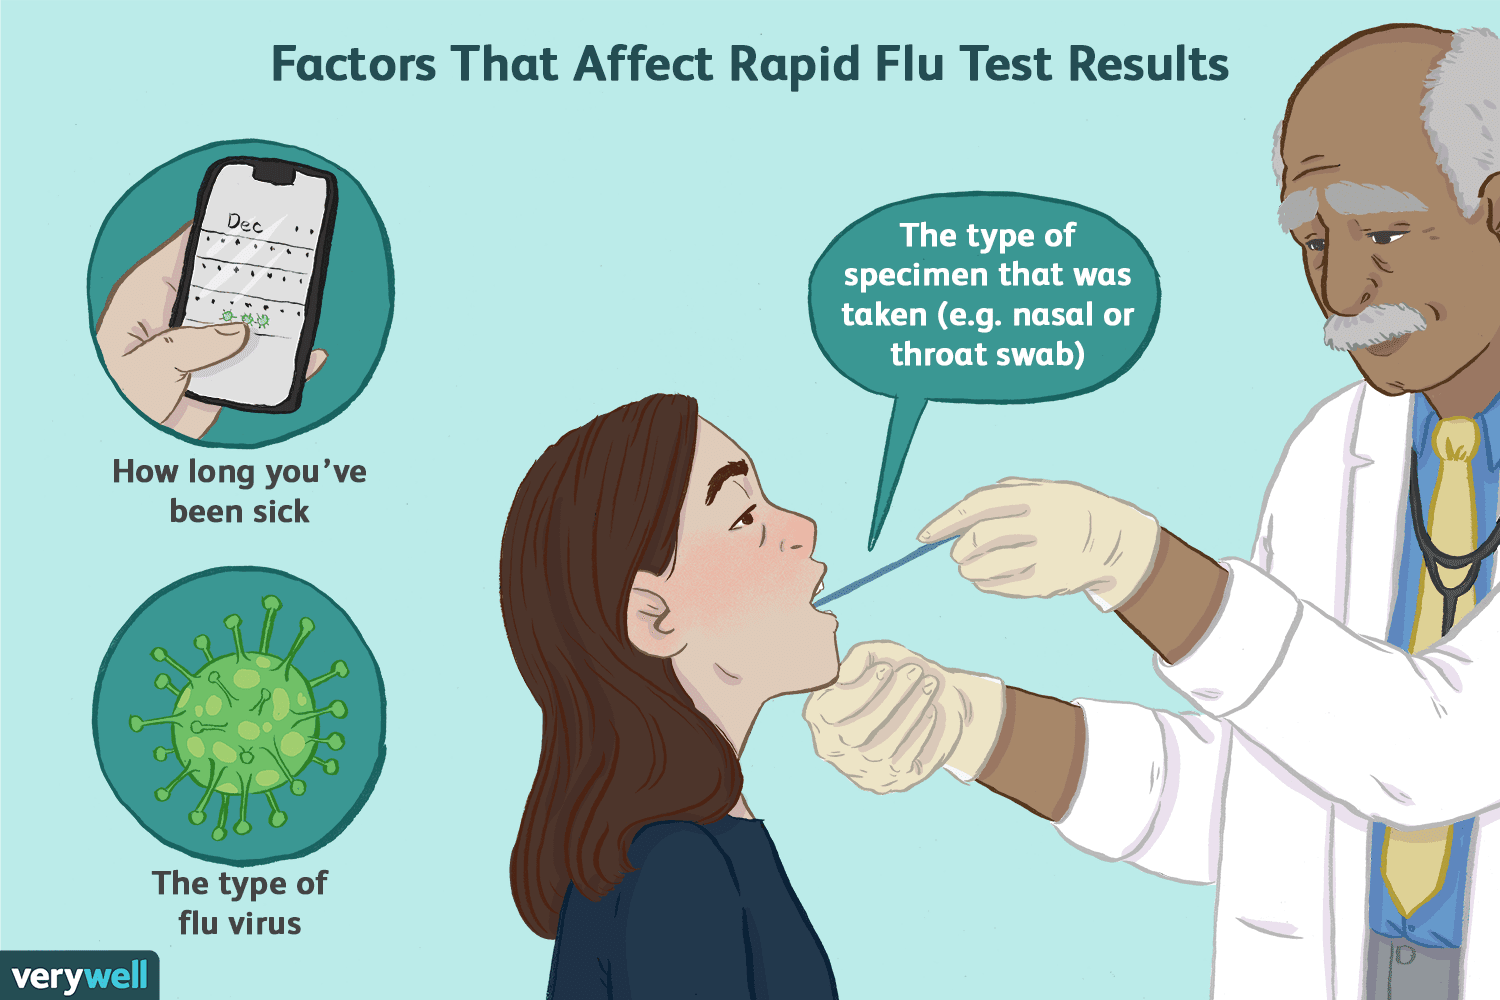 Why Was My Flu Test Negative When I Have the Symptoms?